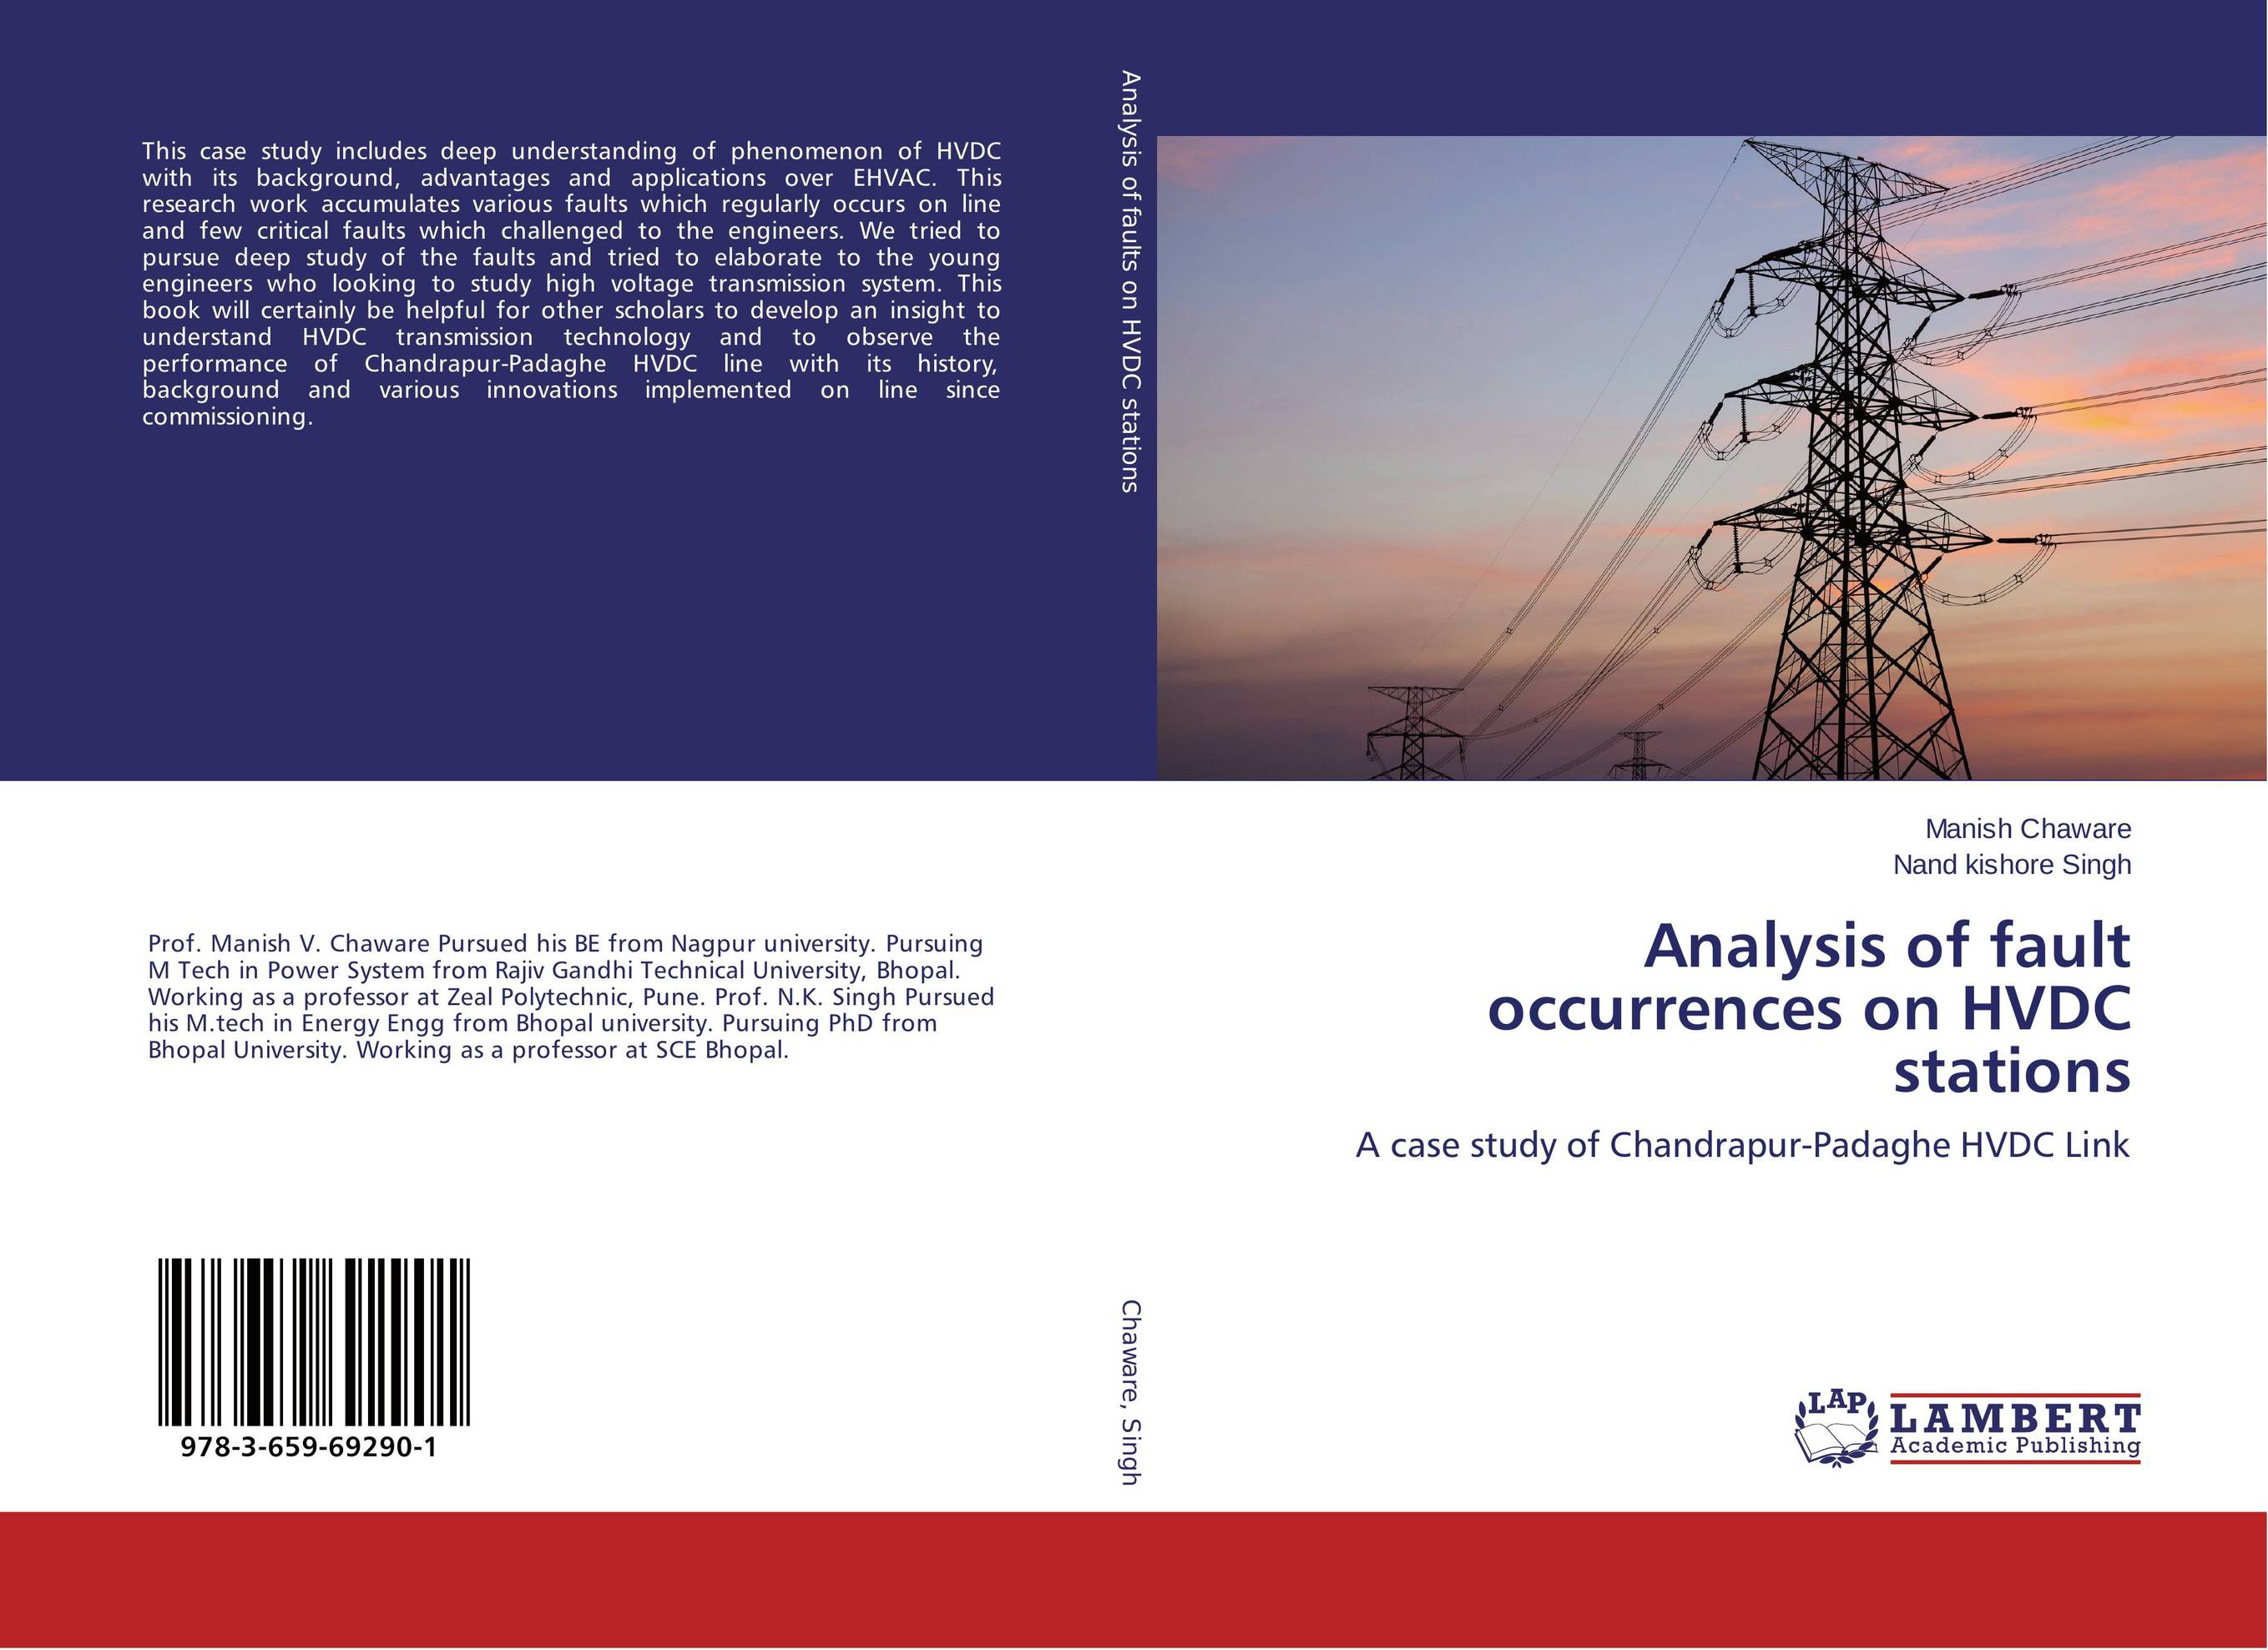 Analysis of fault occurrences on HVDC stations